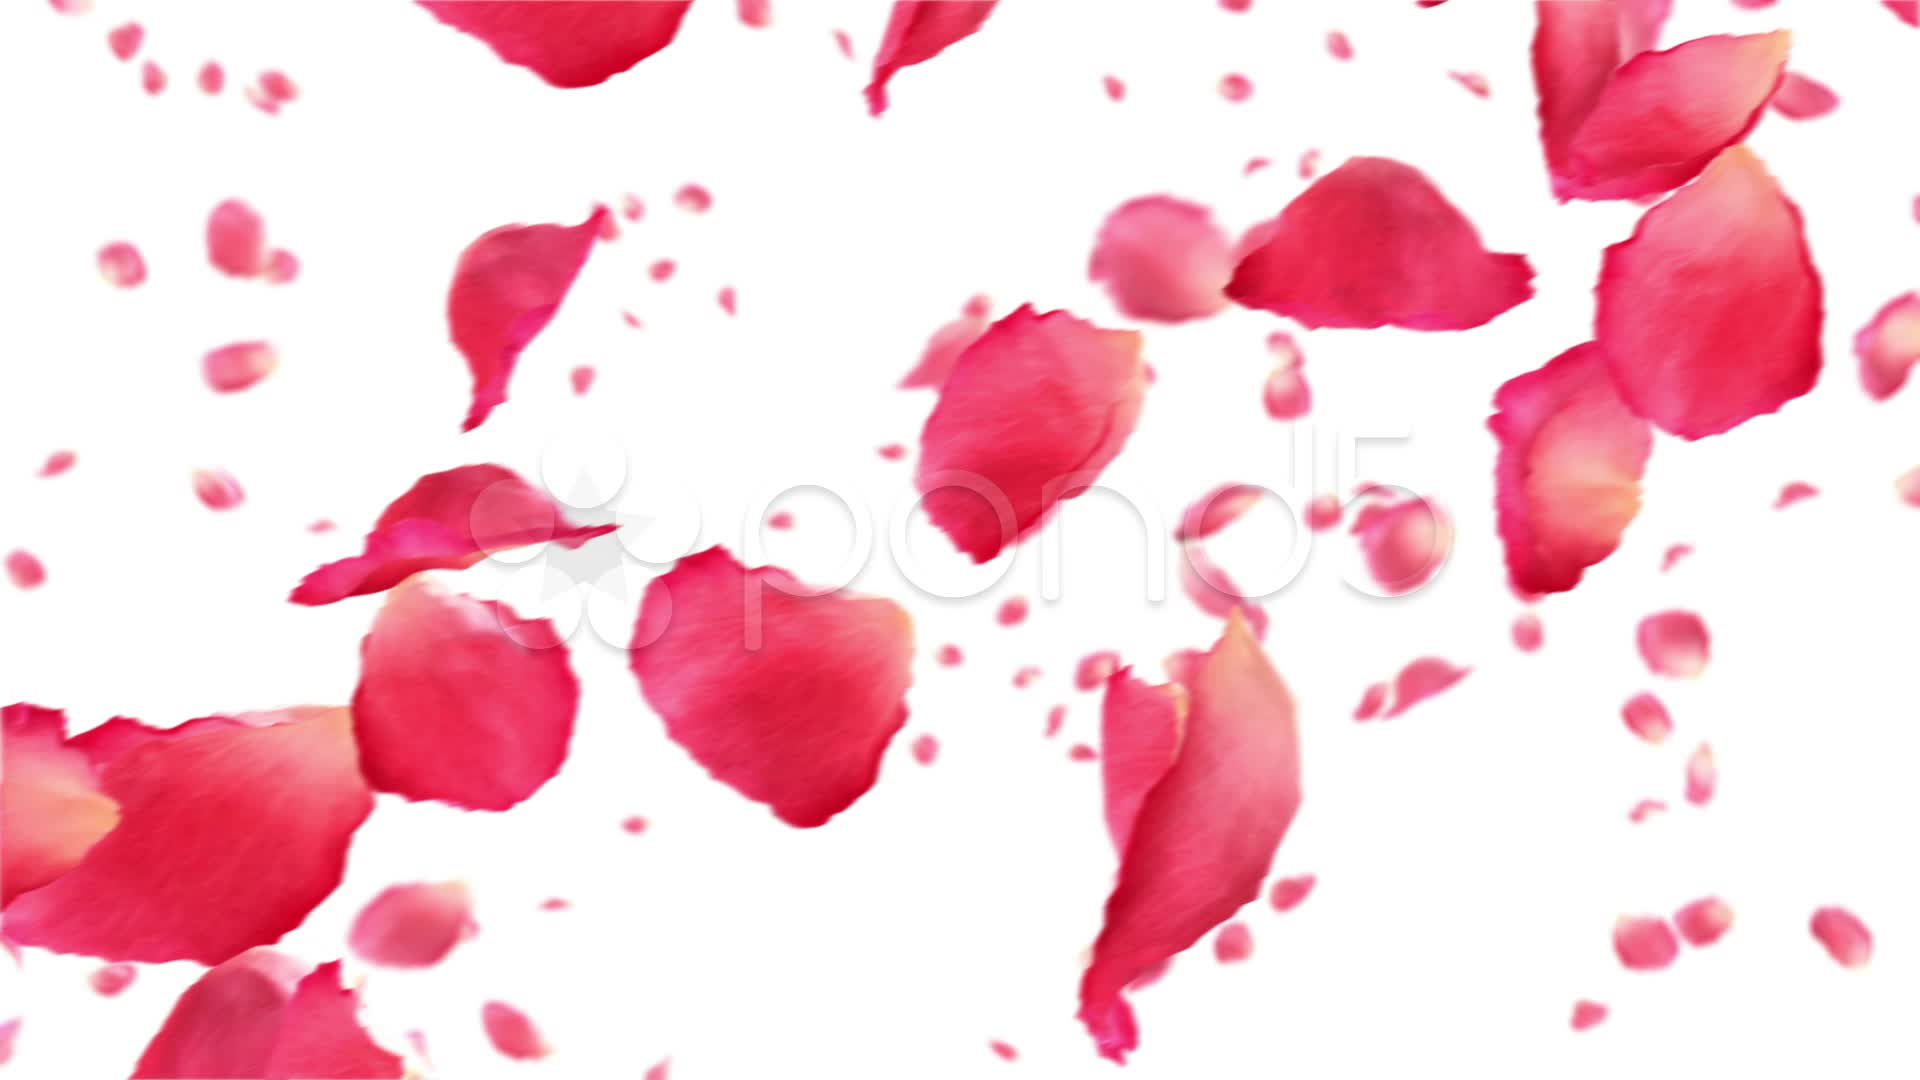 It's just an image of Juicy Rose Petal Drawing